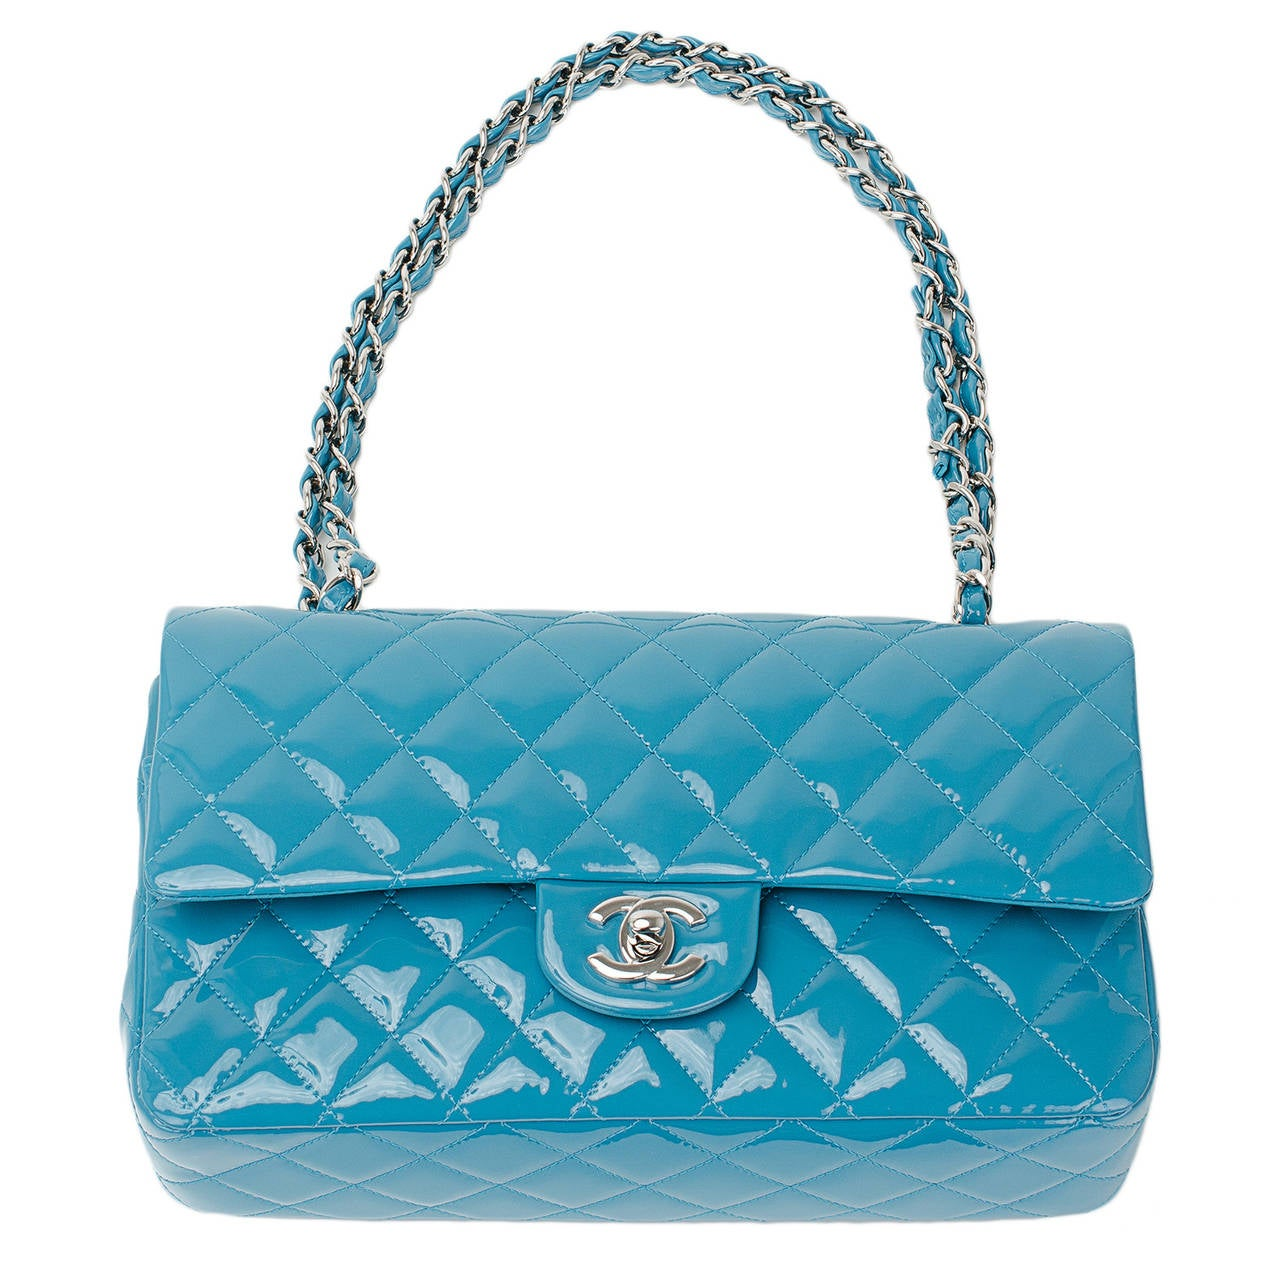 Chanel Turquoise Quilted Patent Medium Classic Double Flap Bag For Sale 1